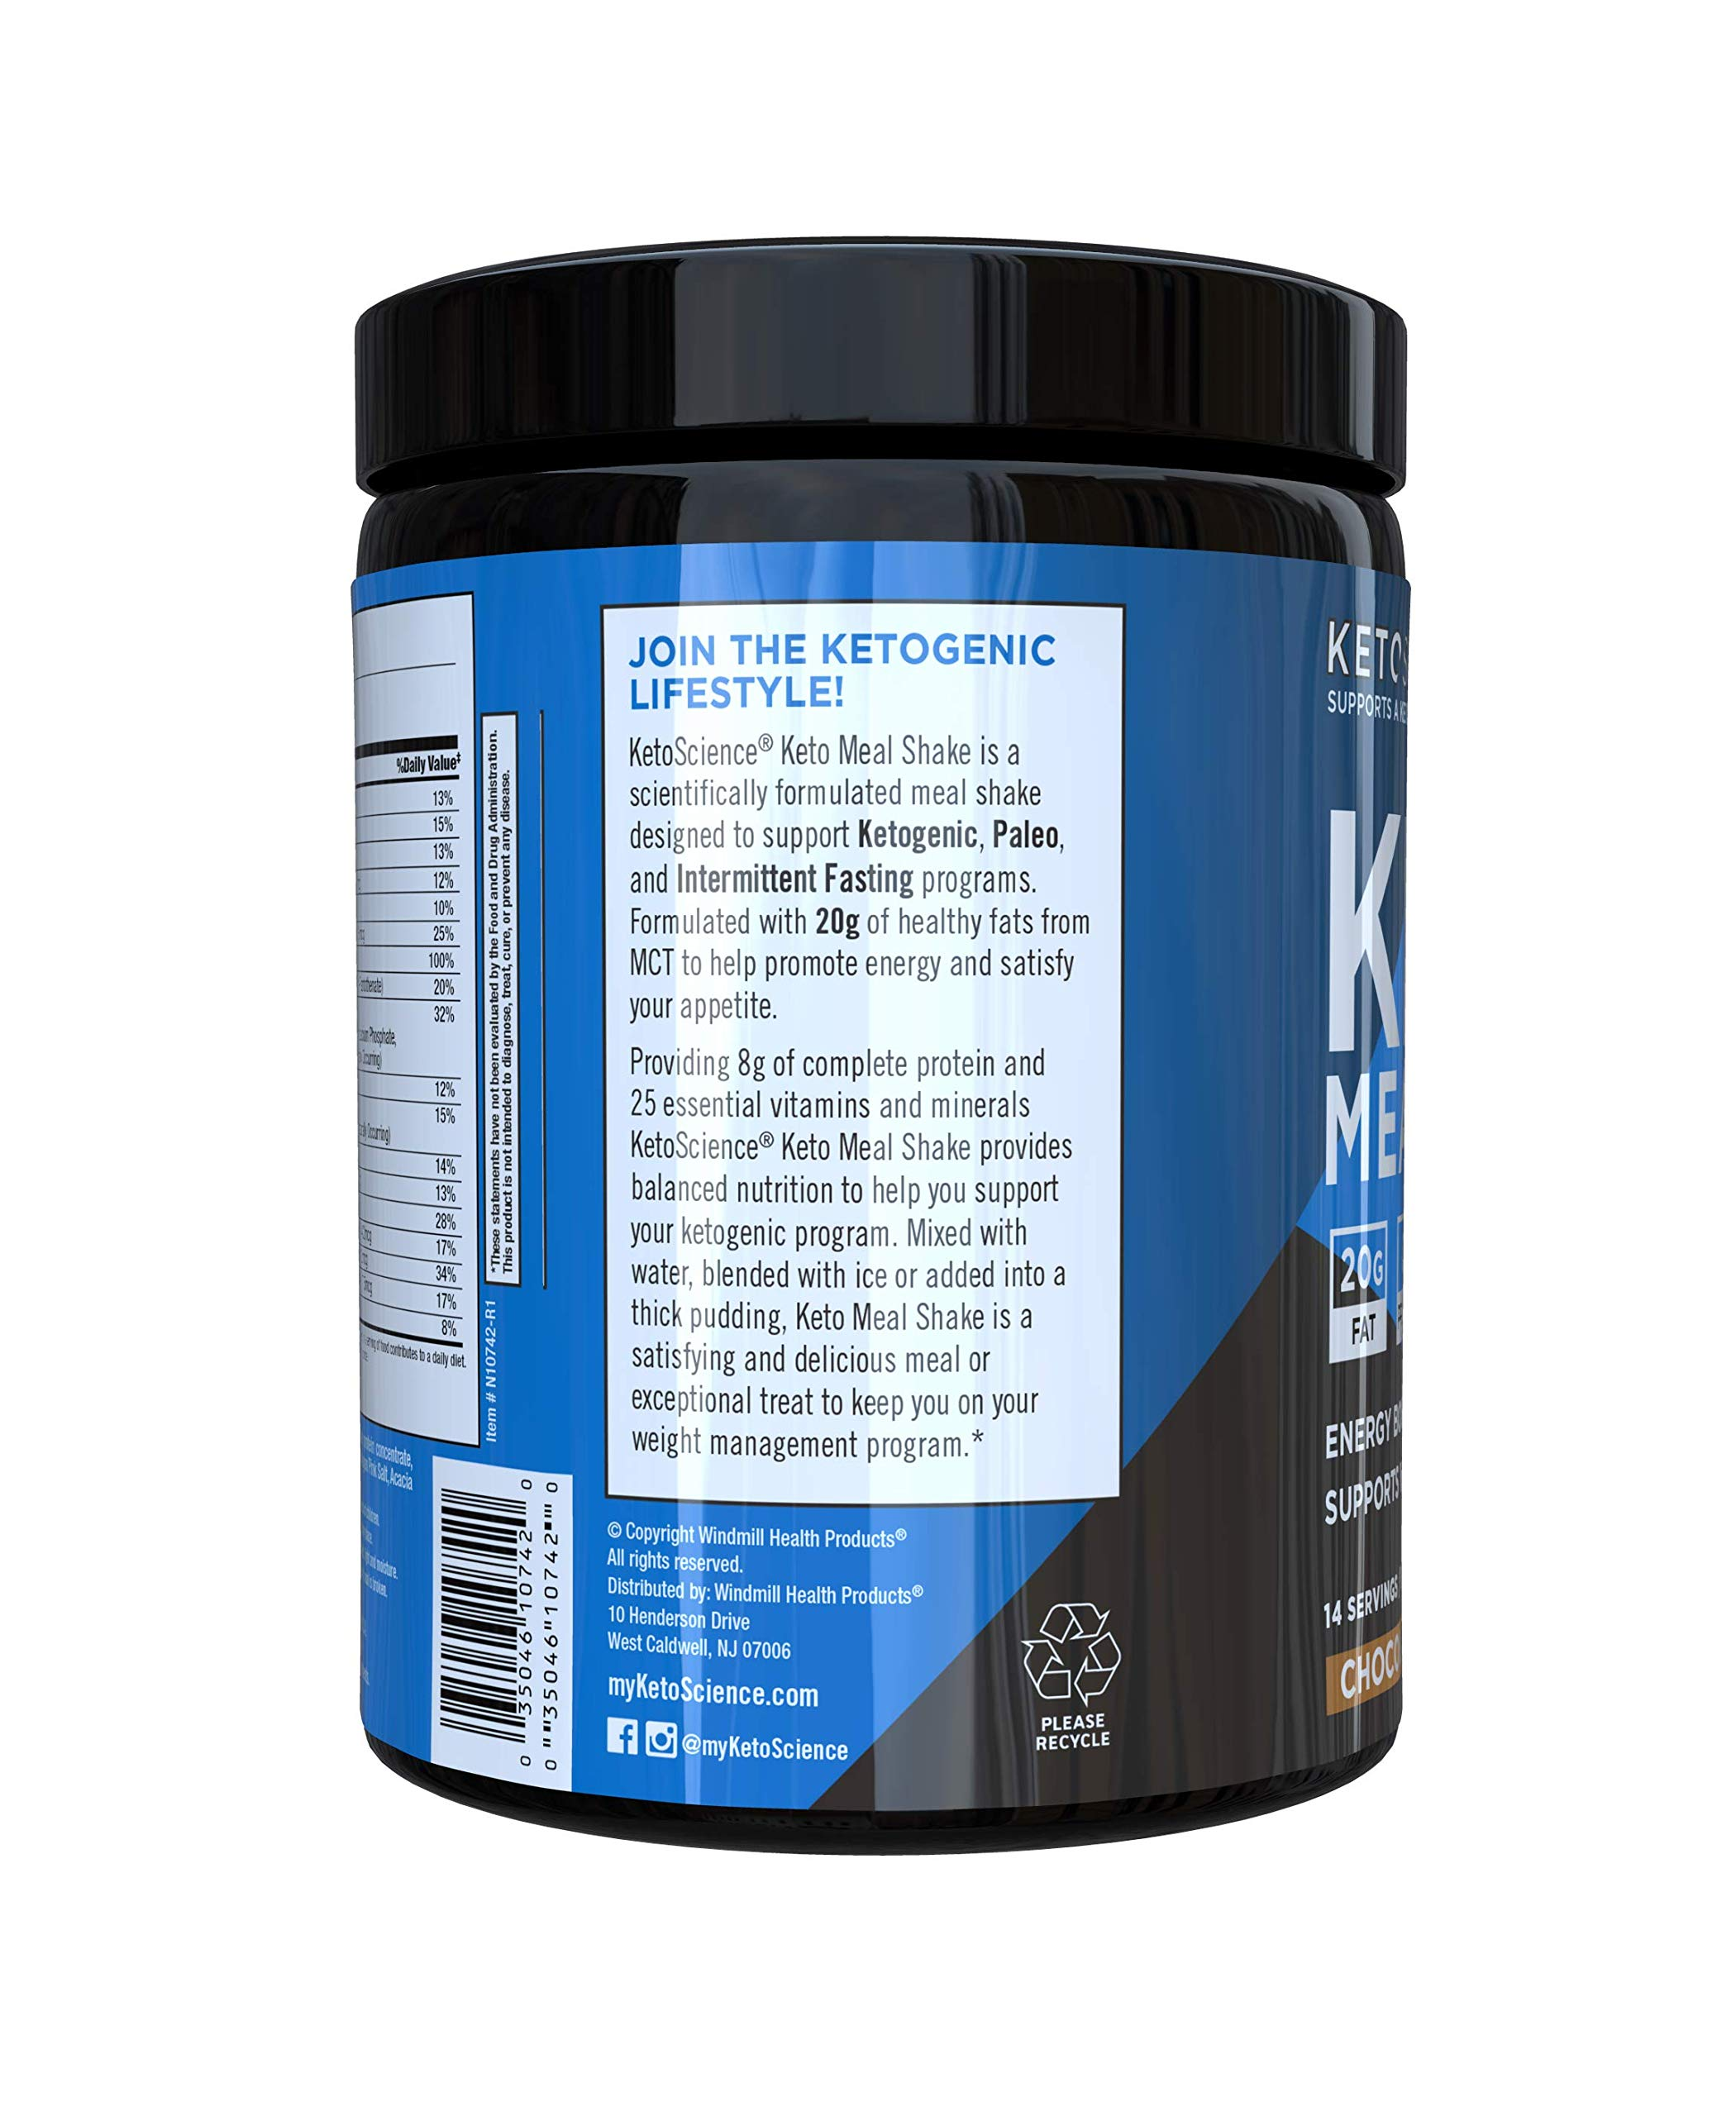 Keto Science Ketogenic Meal Shake Chocolate Dietary Supplement, Rich in MCTs and Protein, Keto and Paleo Friendly, Weight Loss, (14 servings), 20.7 oz Packaging May Vary